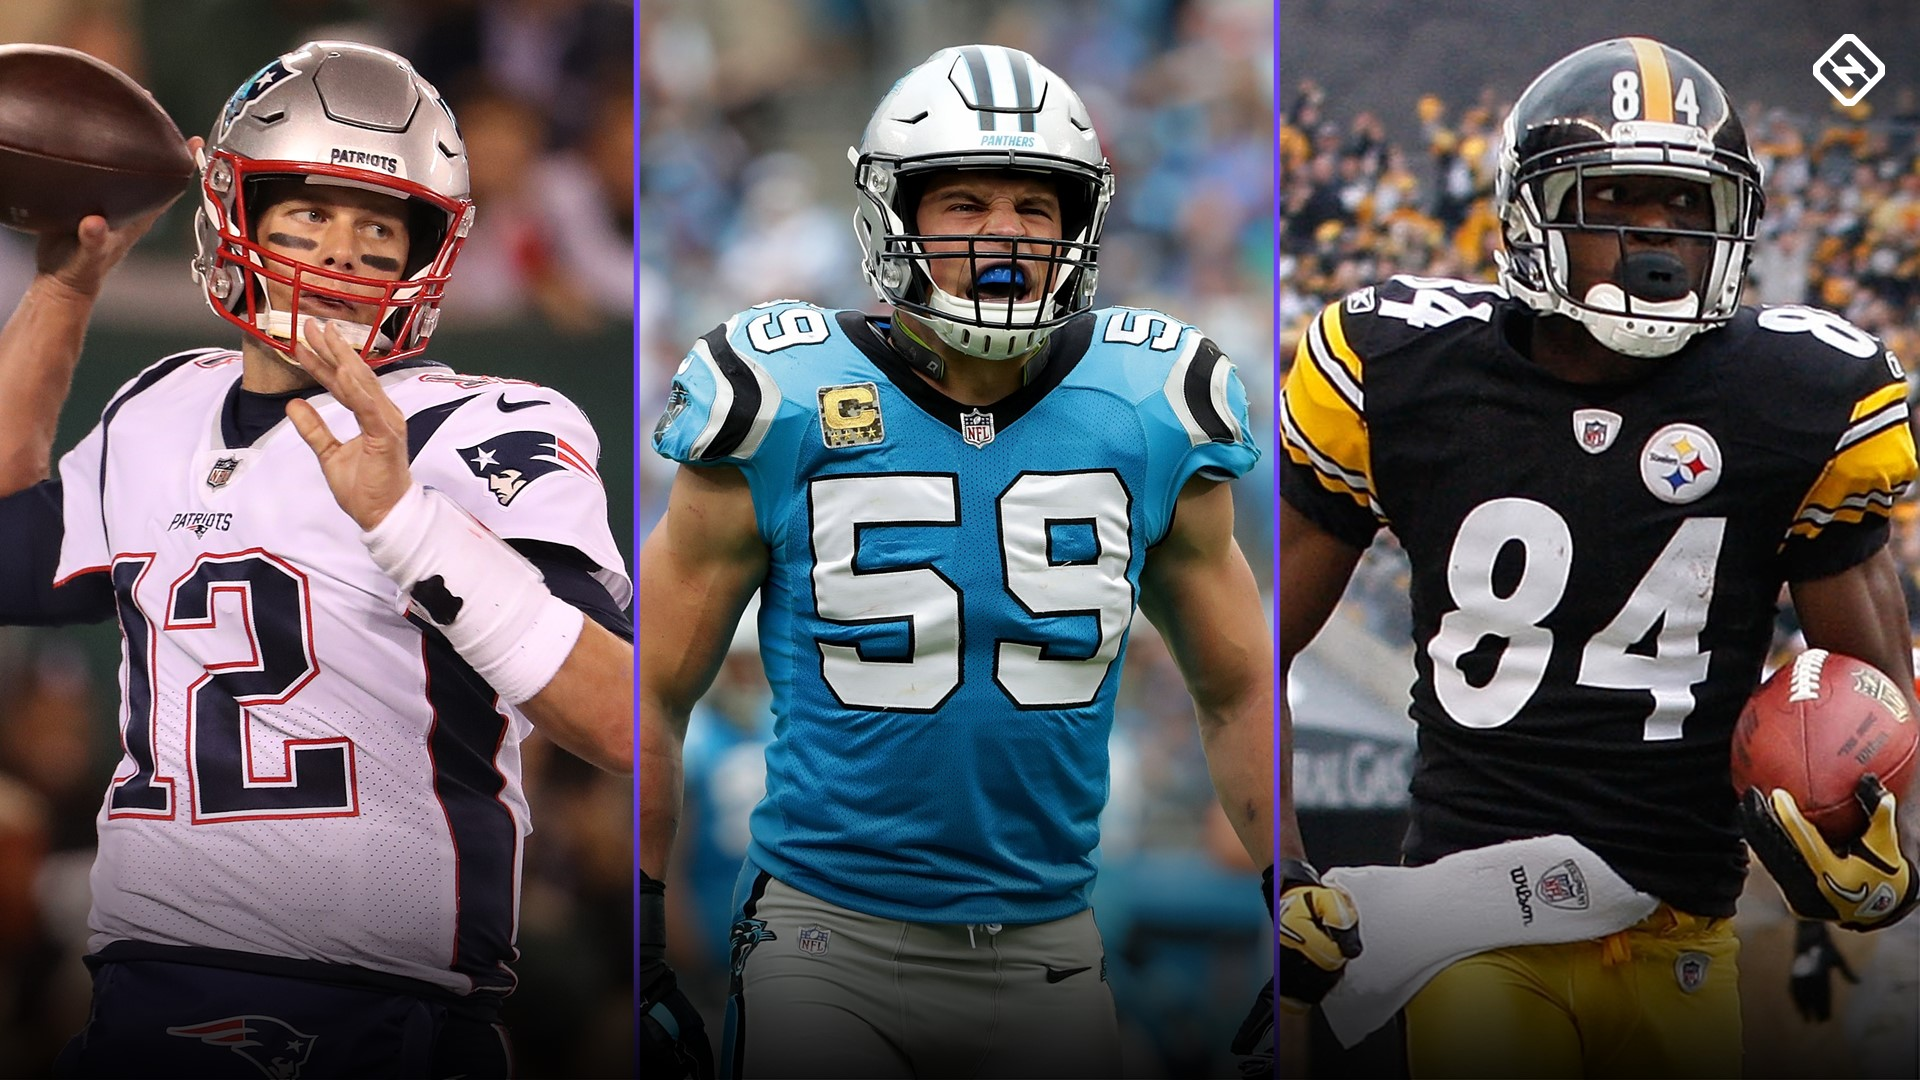 Sporting News' NFL All-Decade team for the 2010s ...